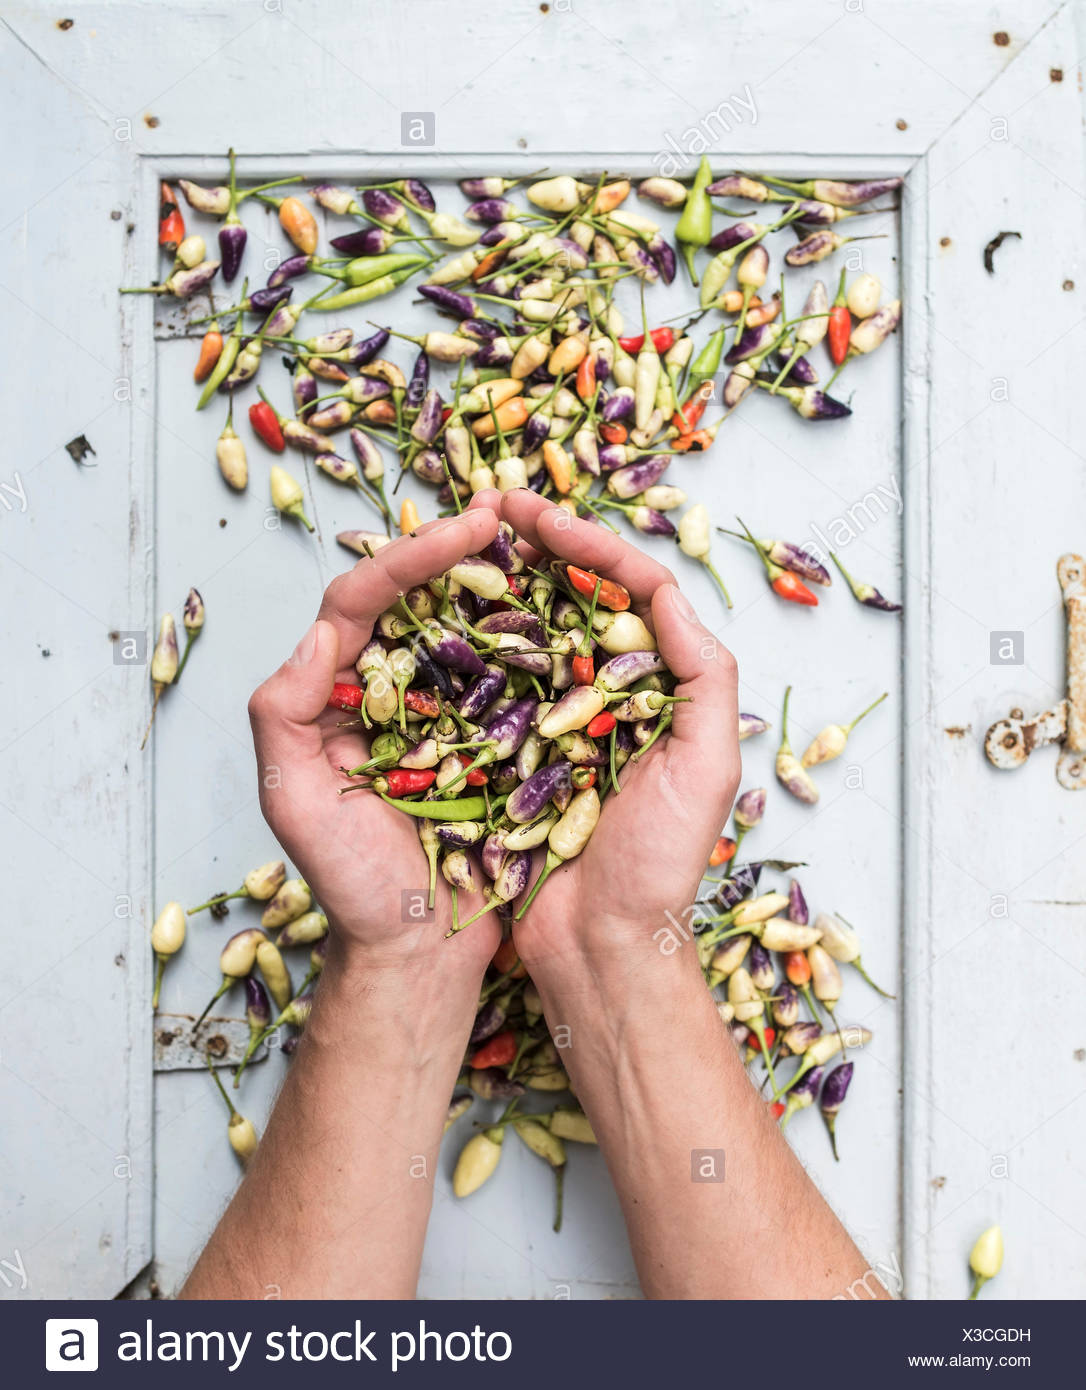 Man's hands keeping handful of small hot Turkish chili peppers, top view - Stock Image